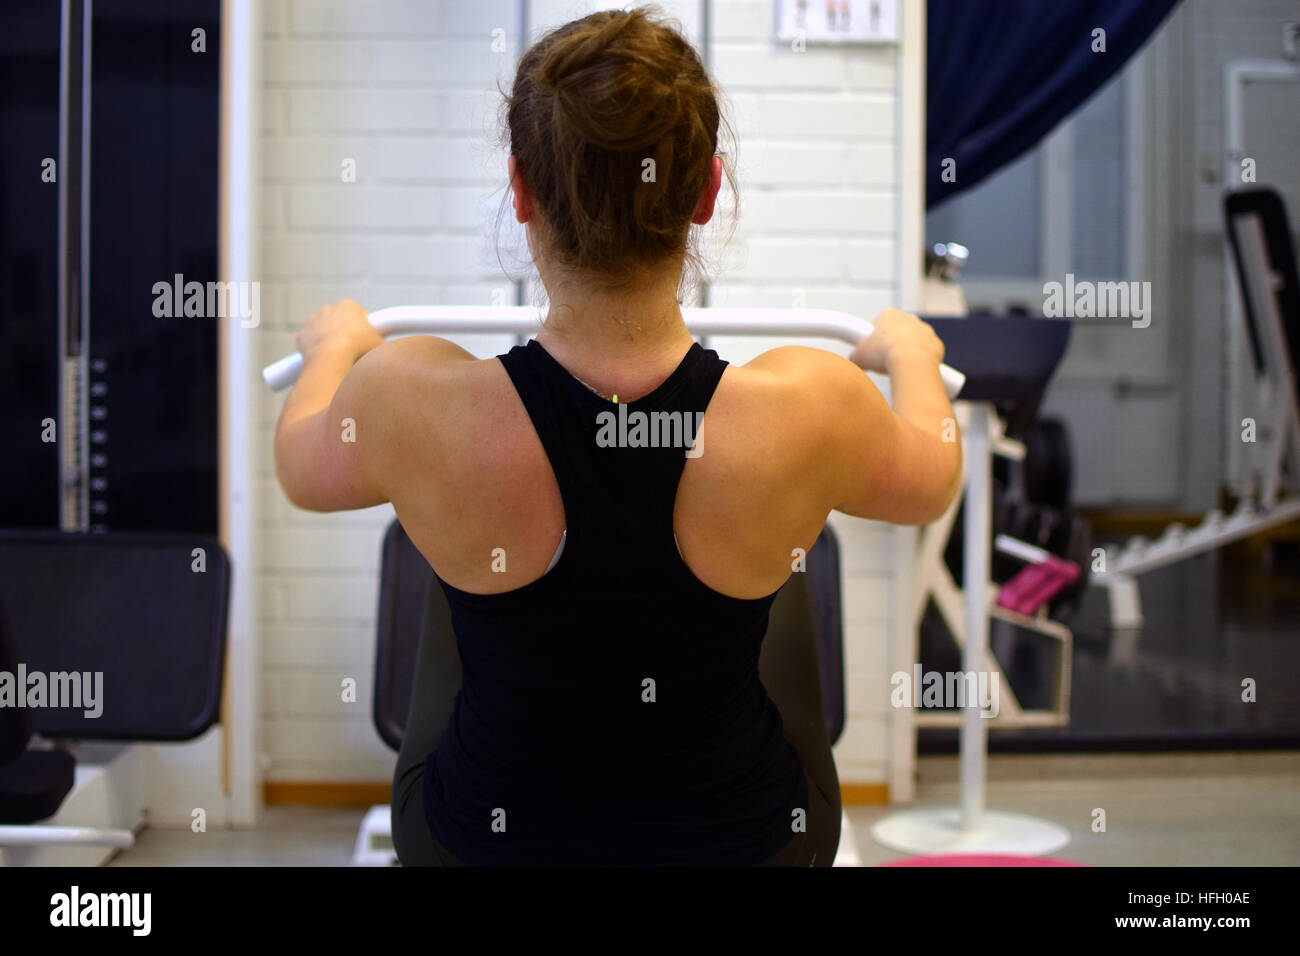 Woman working out her back muscles and arms with pulley at the gym. - Stock Image